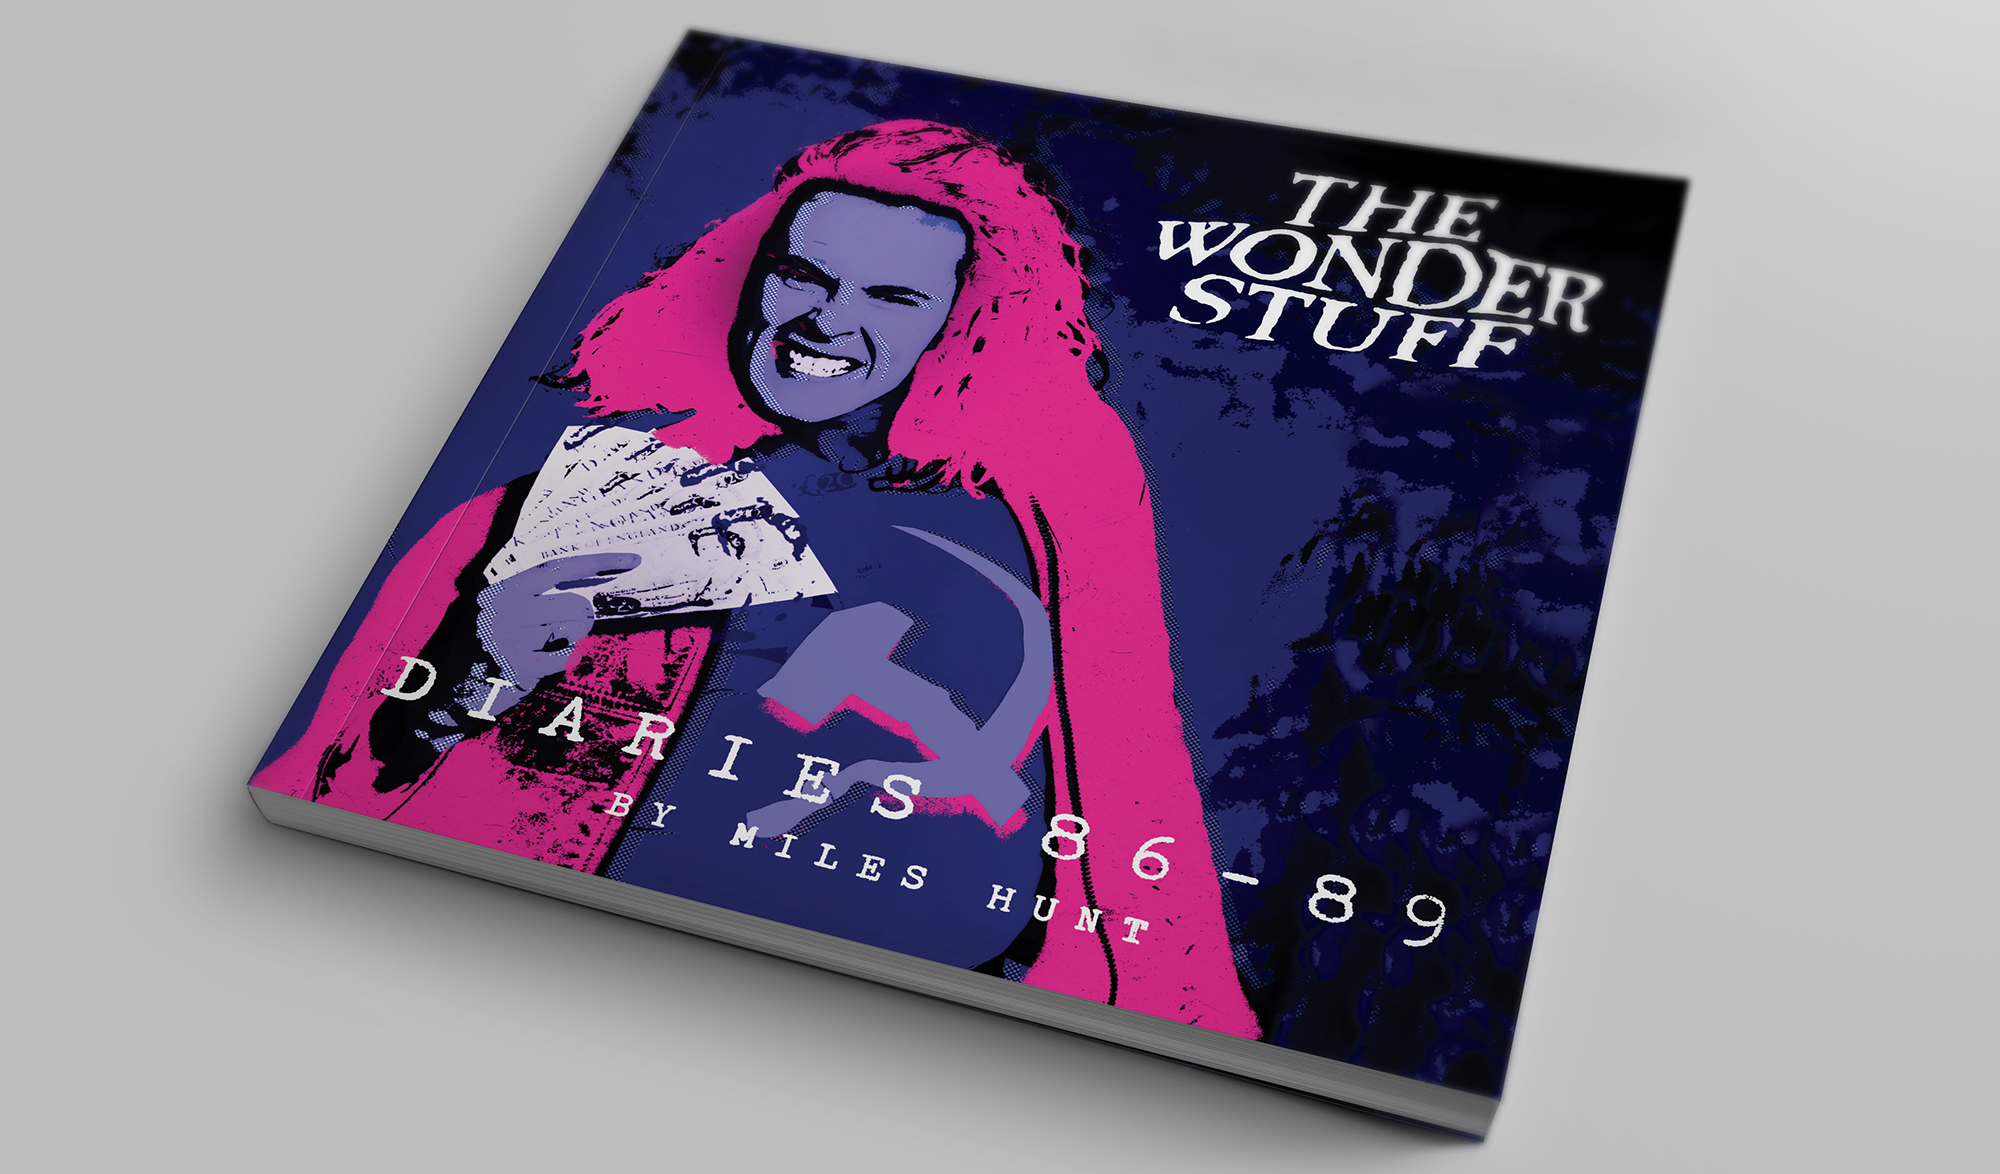 THE WONDER STUFF DIARIES - '86-'89